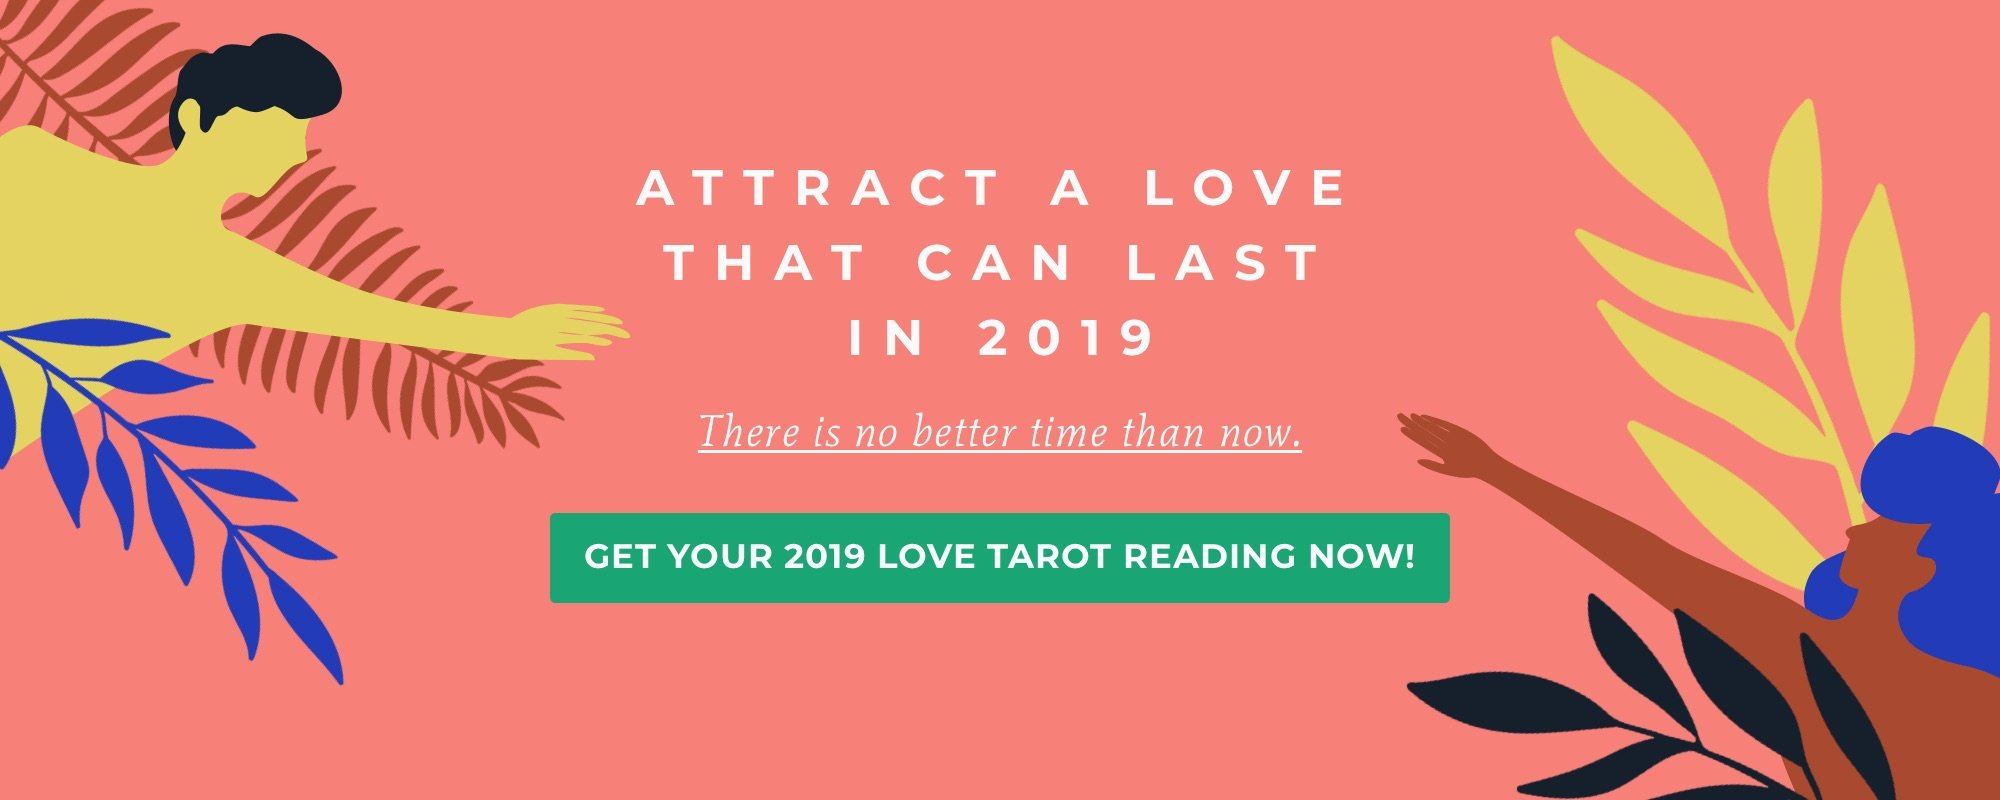 Get your 2019 love tarot